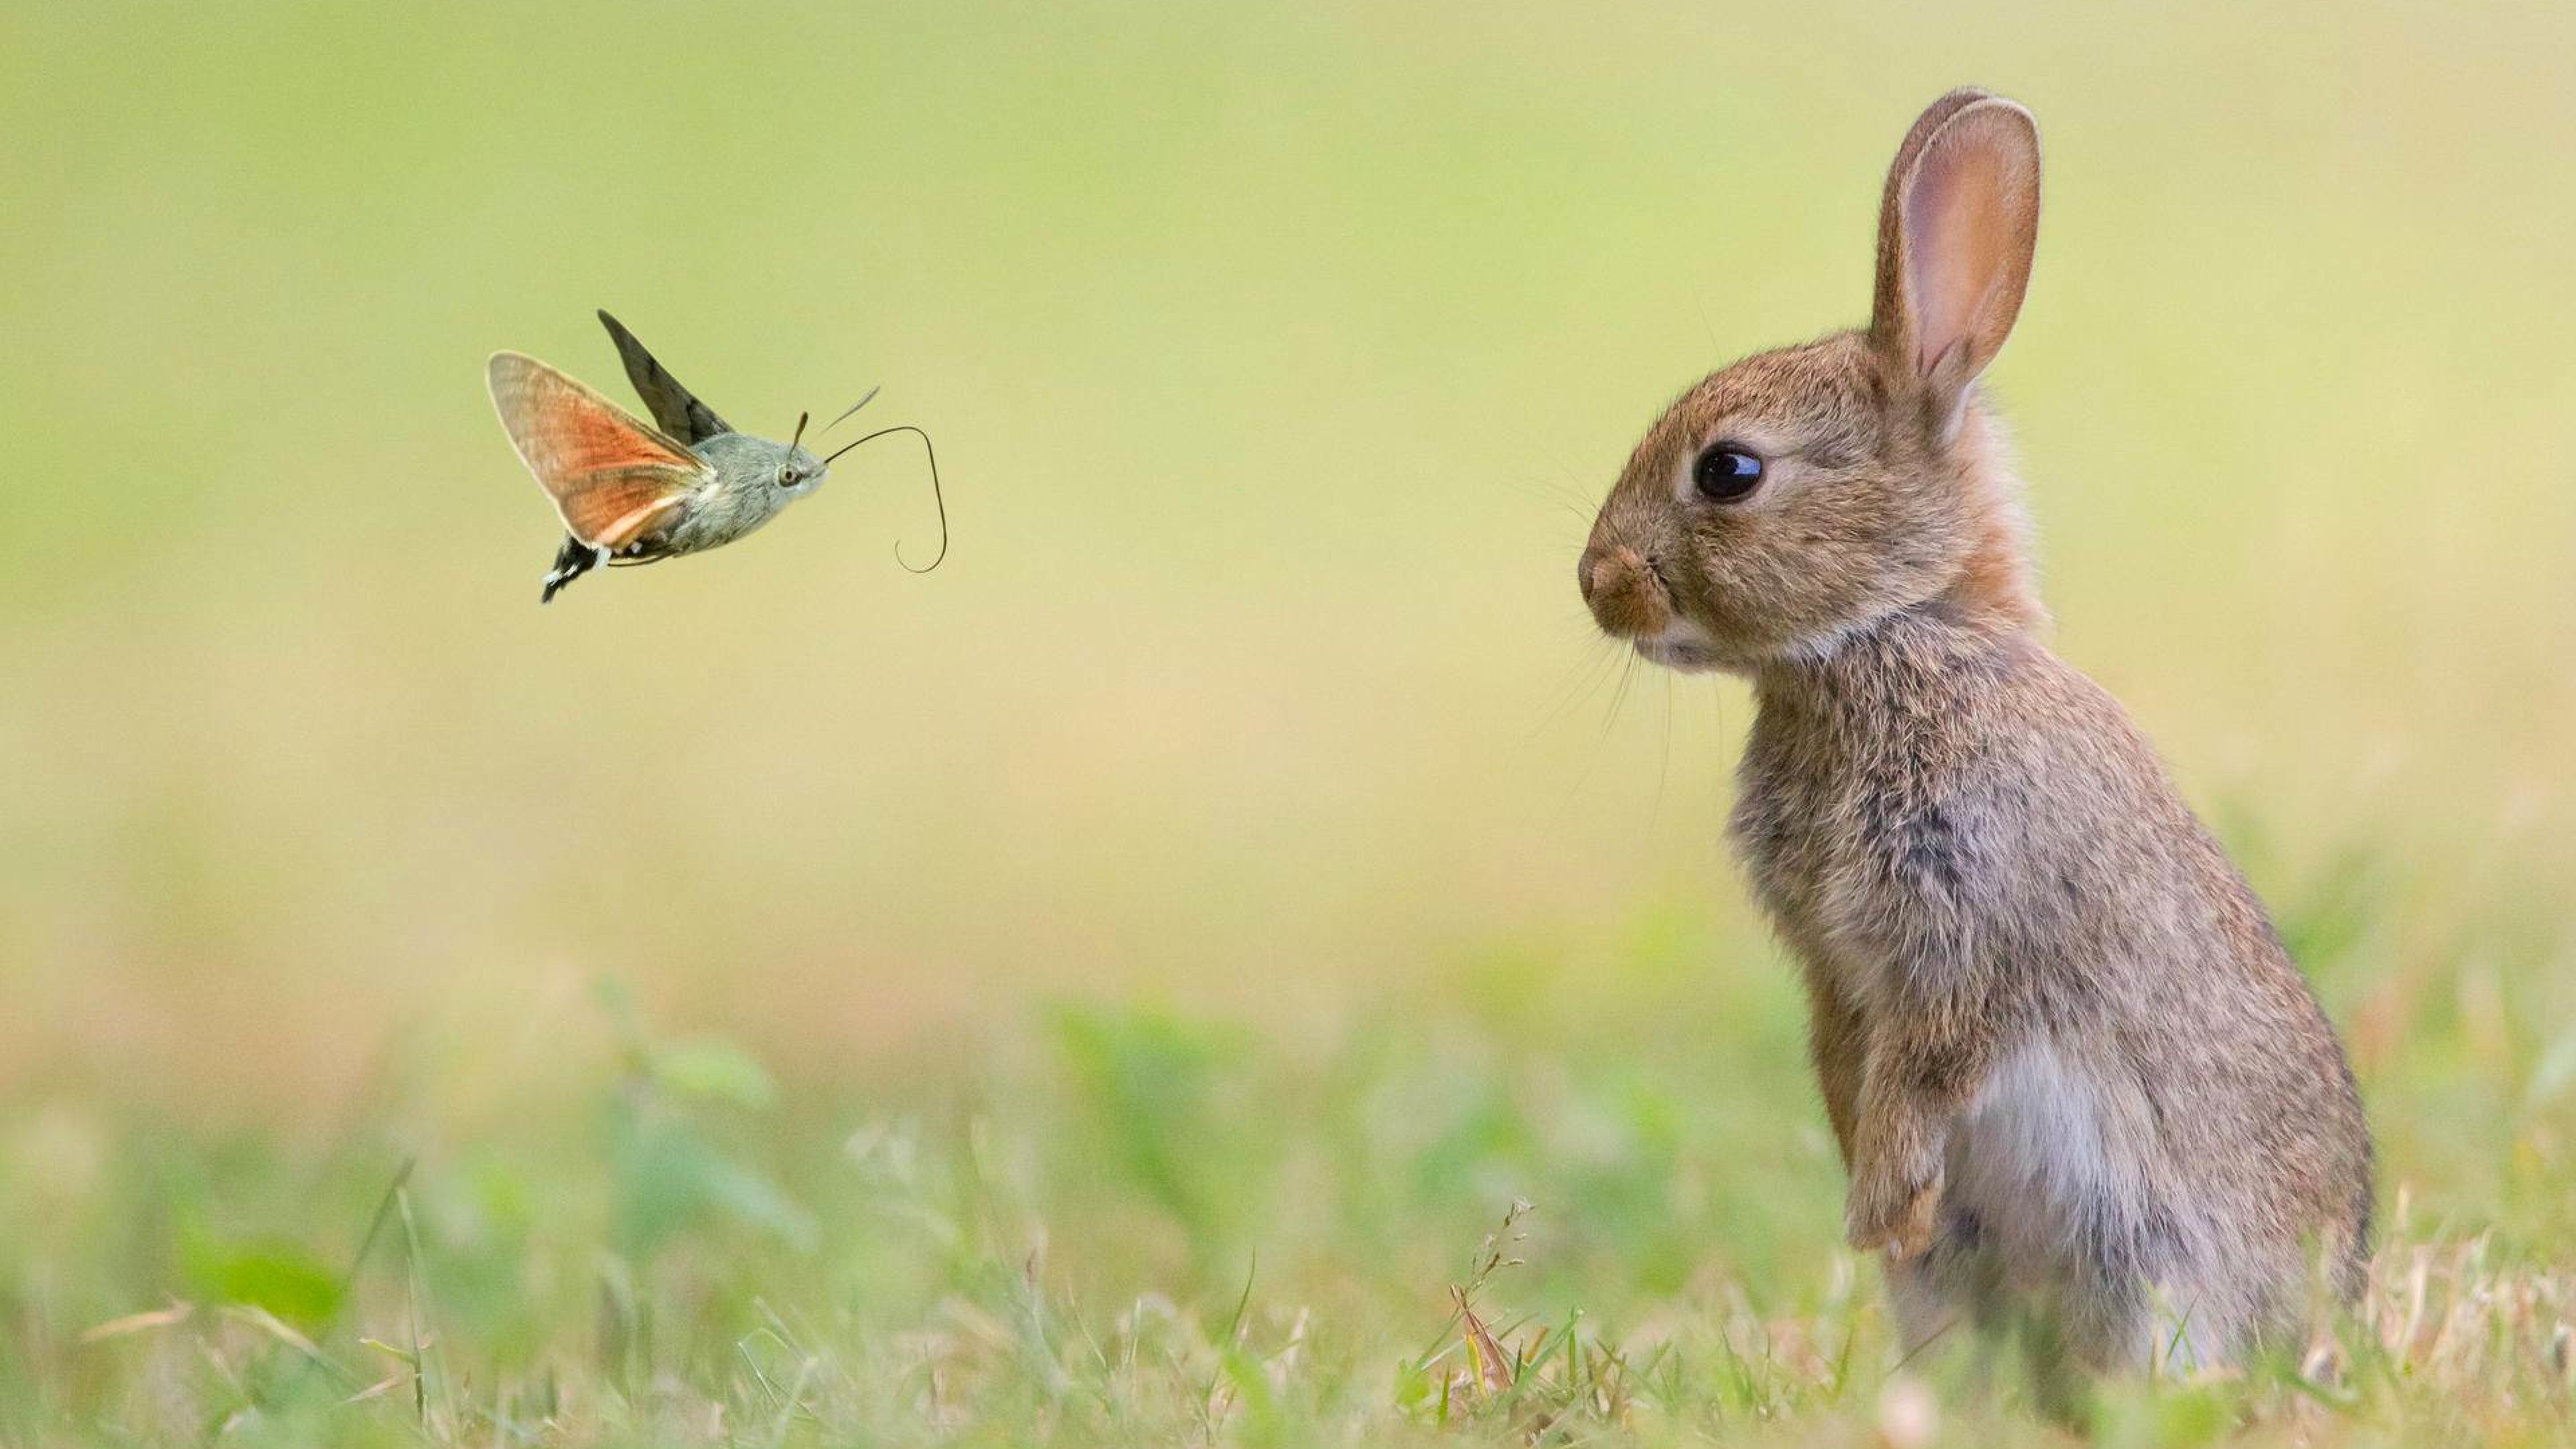 wallpaper rabbit cute animals butterfly 4k animals 15980